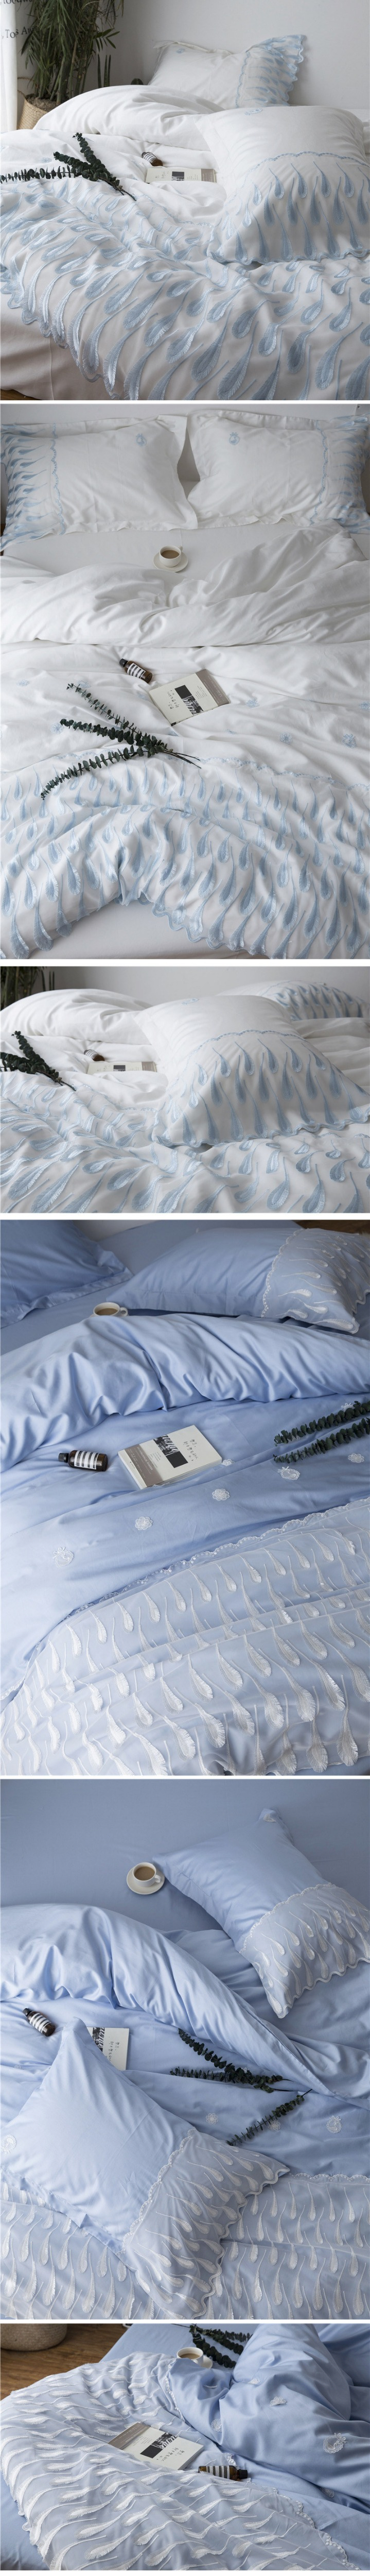 Wedding bedding sets king size 60s satin long staple cotton bed sheets romantic lace embroidery duvet cover bed linen 5